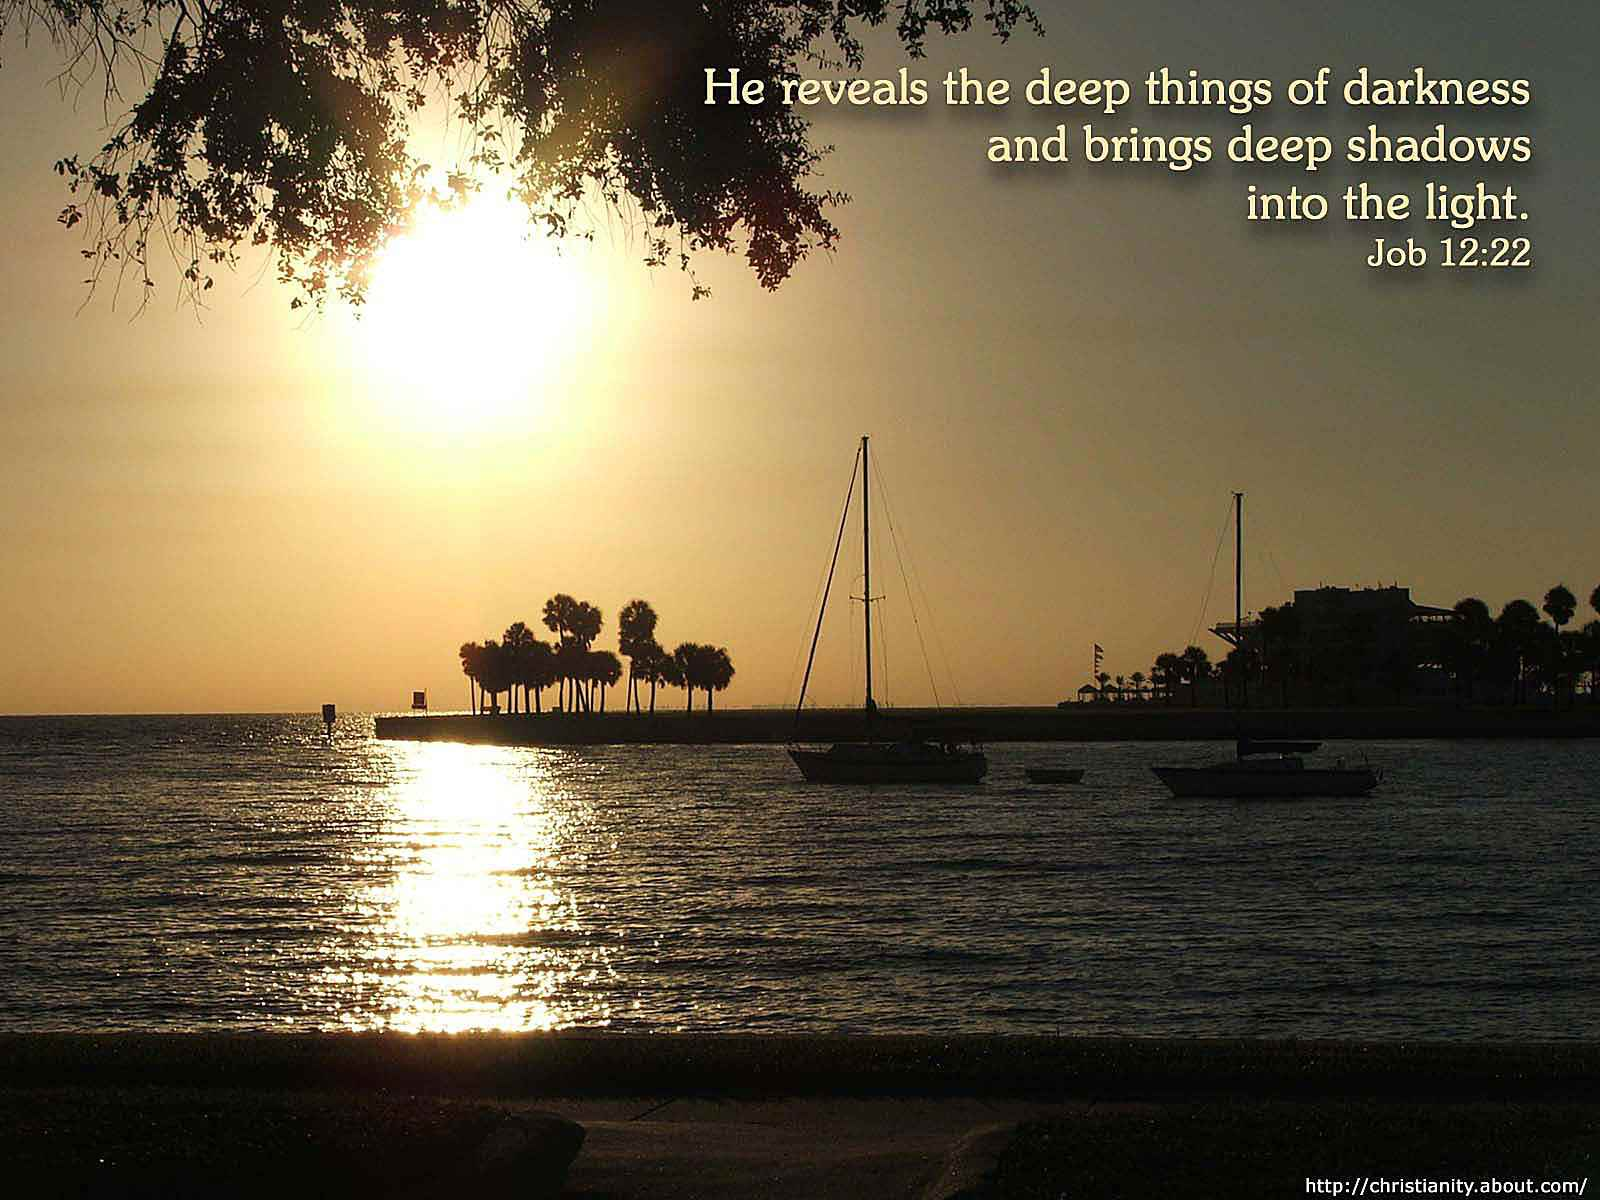 Sunset Boats on Water with bible verse